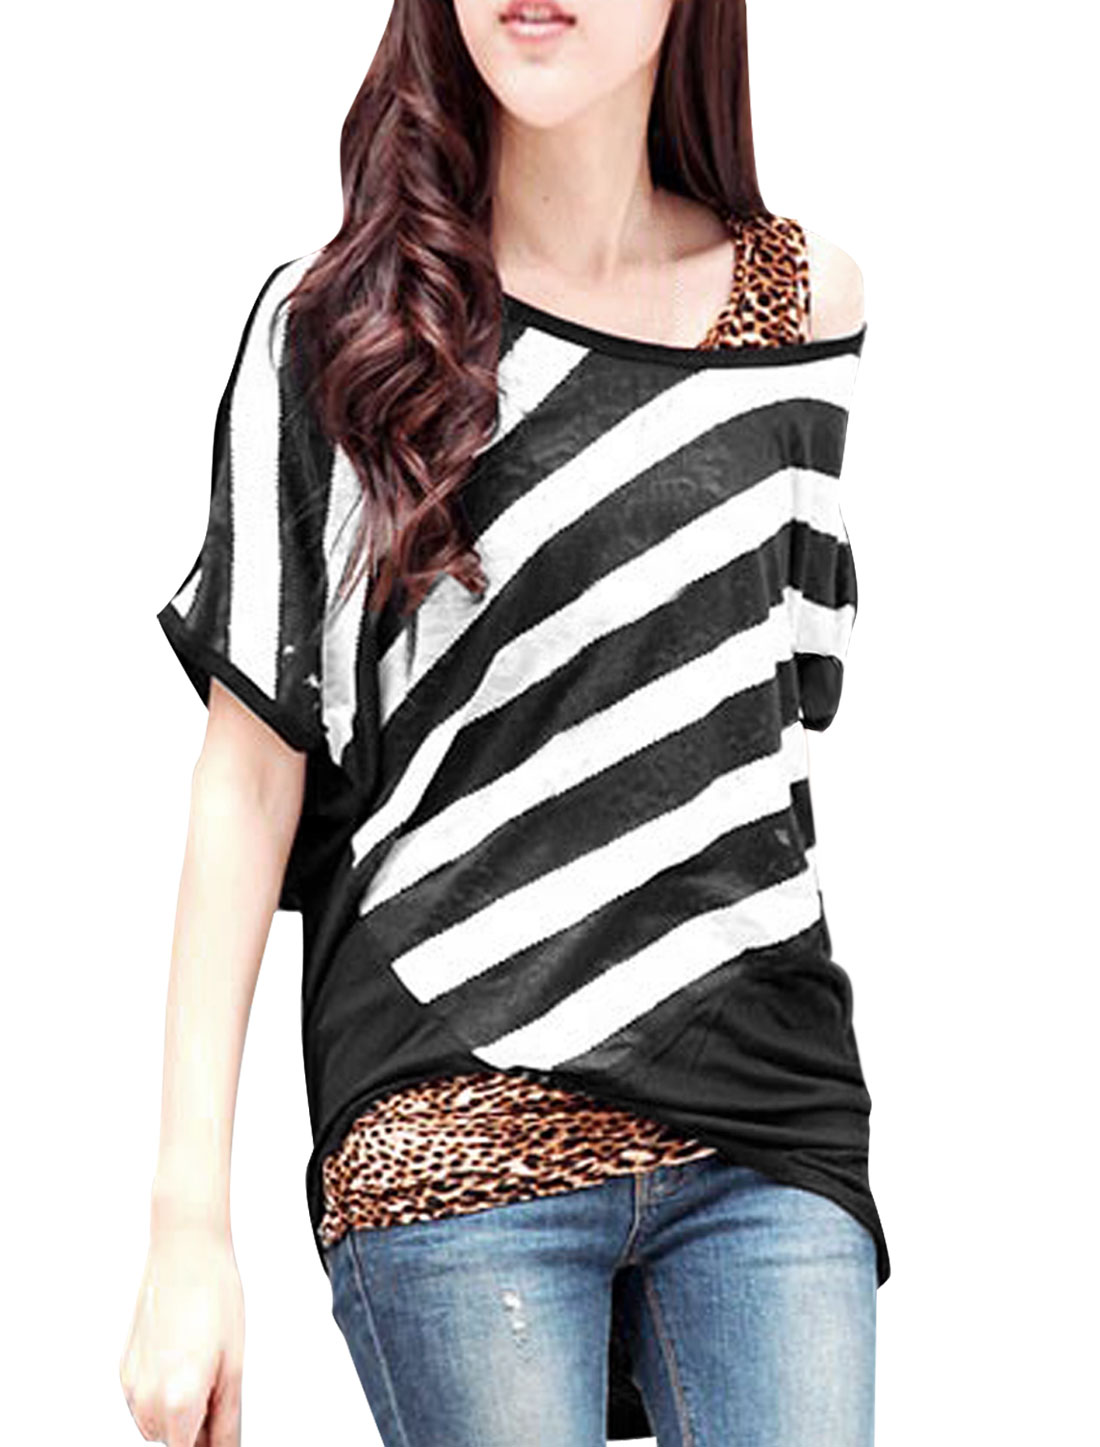 Lady Black Round Neck Batwing Sleeve Bar Striped Panel Top S